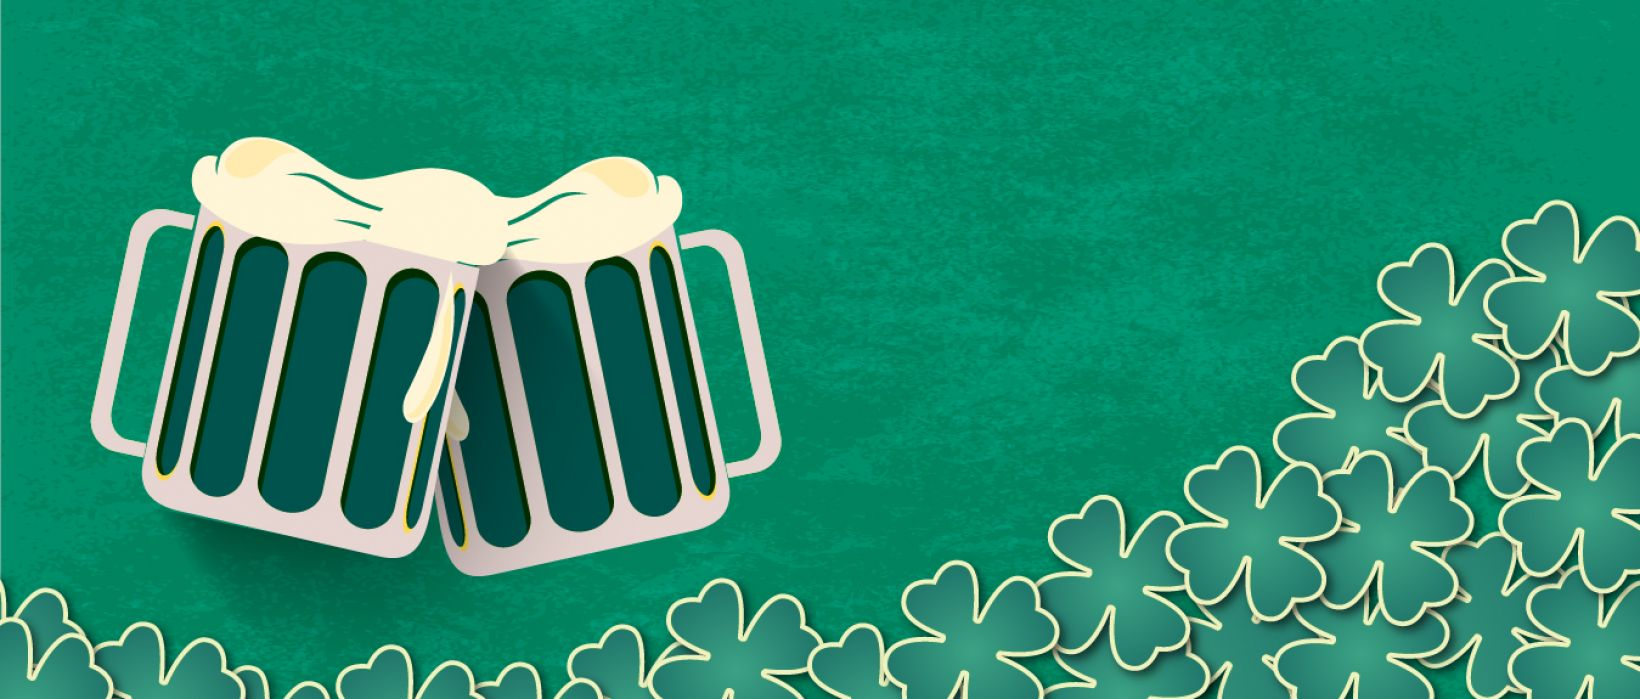 Photo for: St. Patrick`s Day and Green Beer in the United States